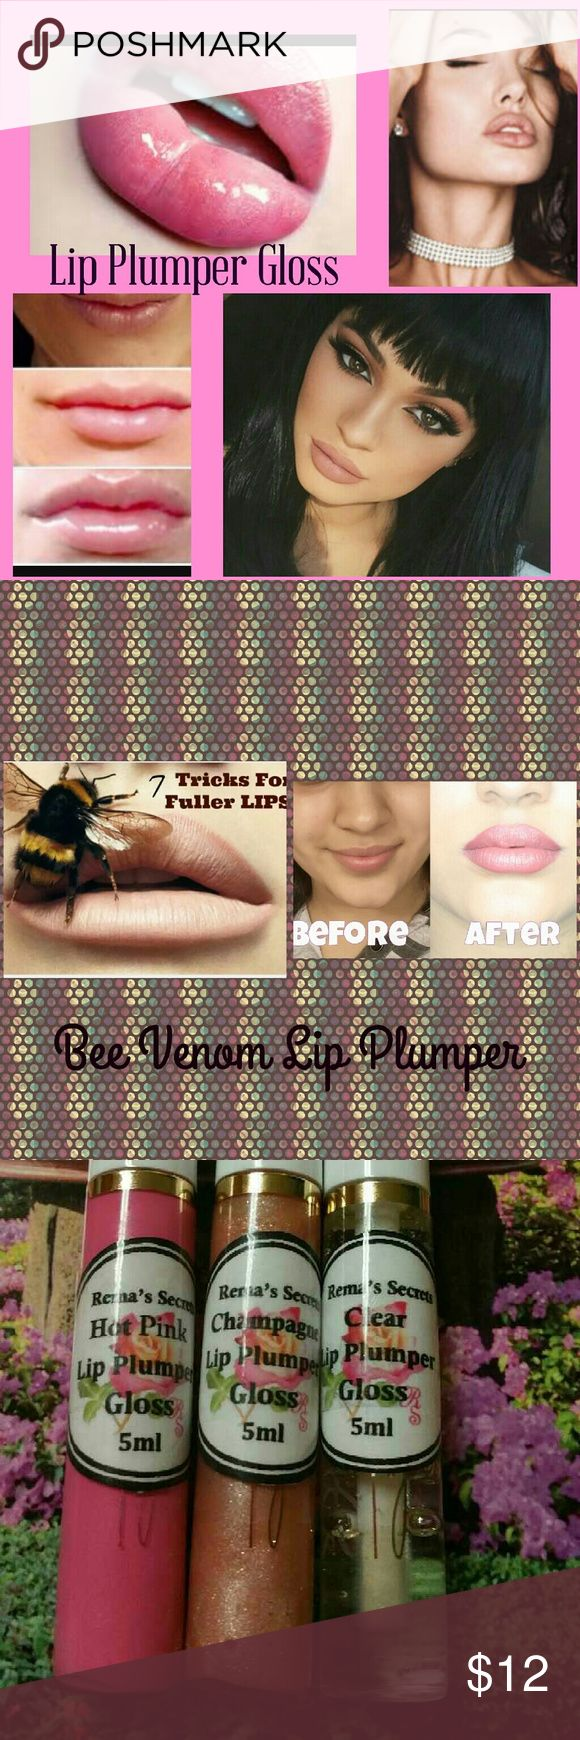 Bee Venom Lip Plumper Gloss Apply to lips to make them bigger Fuller fast contains bee venom cinnamon peppermint Shea butter glycerin the longer you use the more permanent results you will get this will sting when applied but will only last about a minute Choose a color hot pink clear or champagne they also have bronze available if you don't choose a color I will send hot pink Only comes with one lip gloss plumper Makeup Lip Balm & Gloss